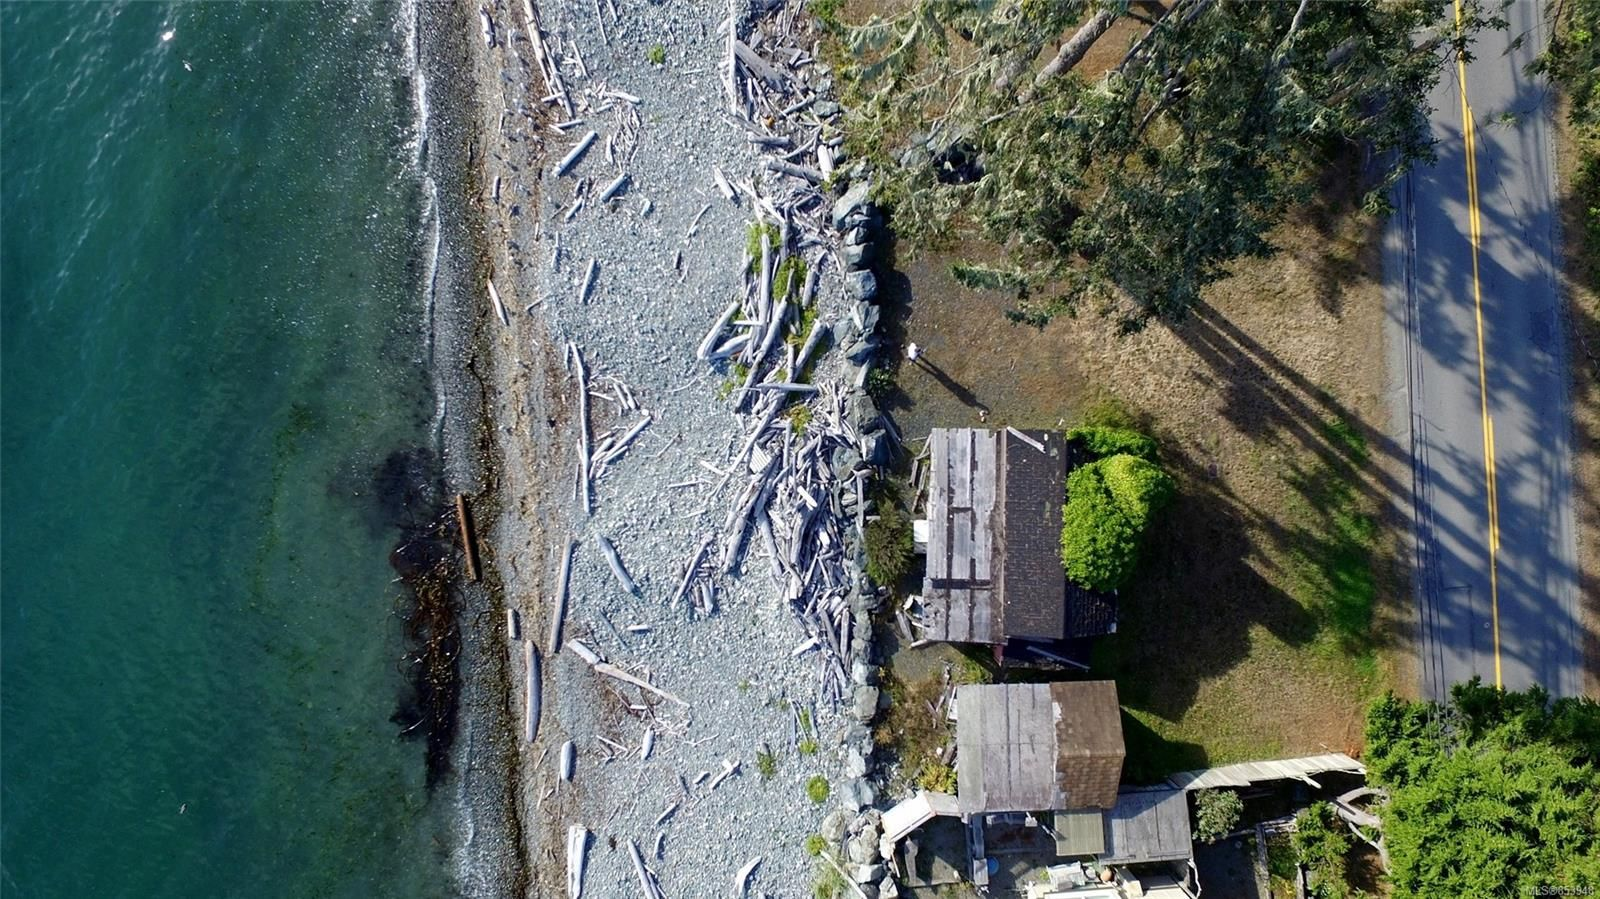 Main Photo: 8709 West Coast Rd in : Sk West Coast Rd Land for sale (Sooke)  : MLS®# 853948